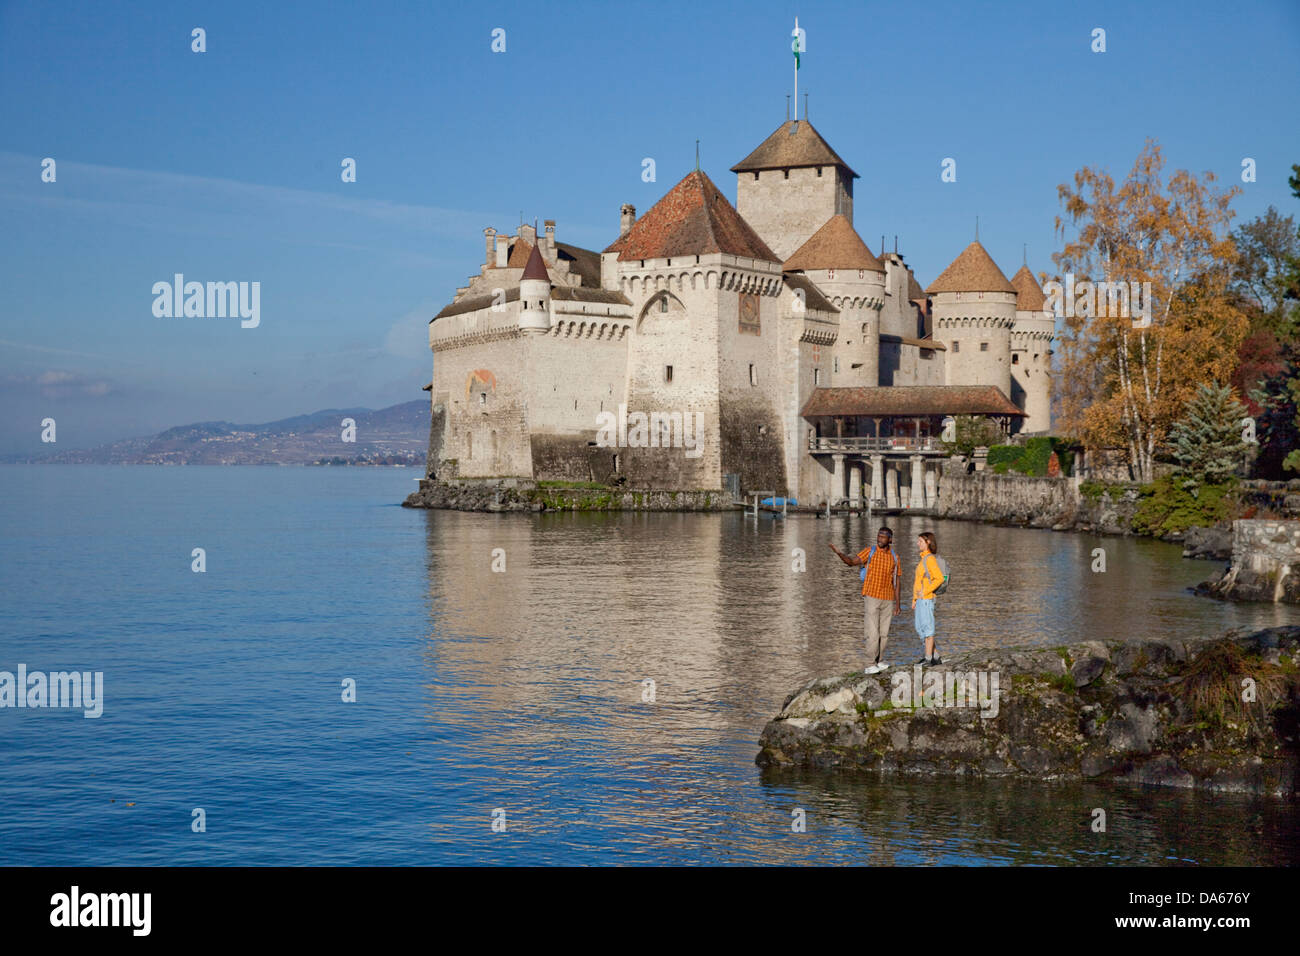 Traveller, Castle, Chillon, autumn, Castle, lake, lakes, canton, VD, Vaud, lake Geneva, Lac Leman, footpath, walking, - Stock Image